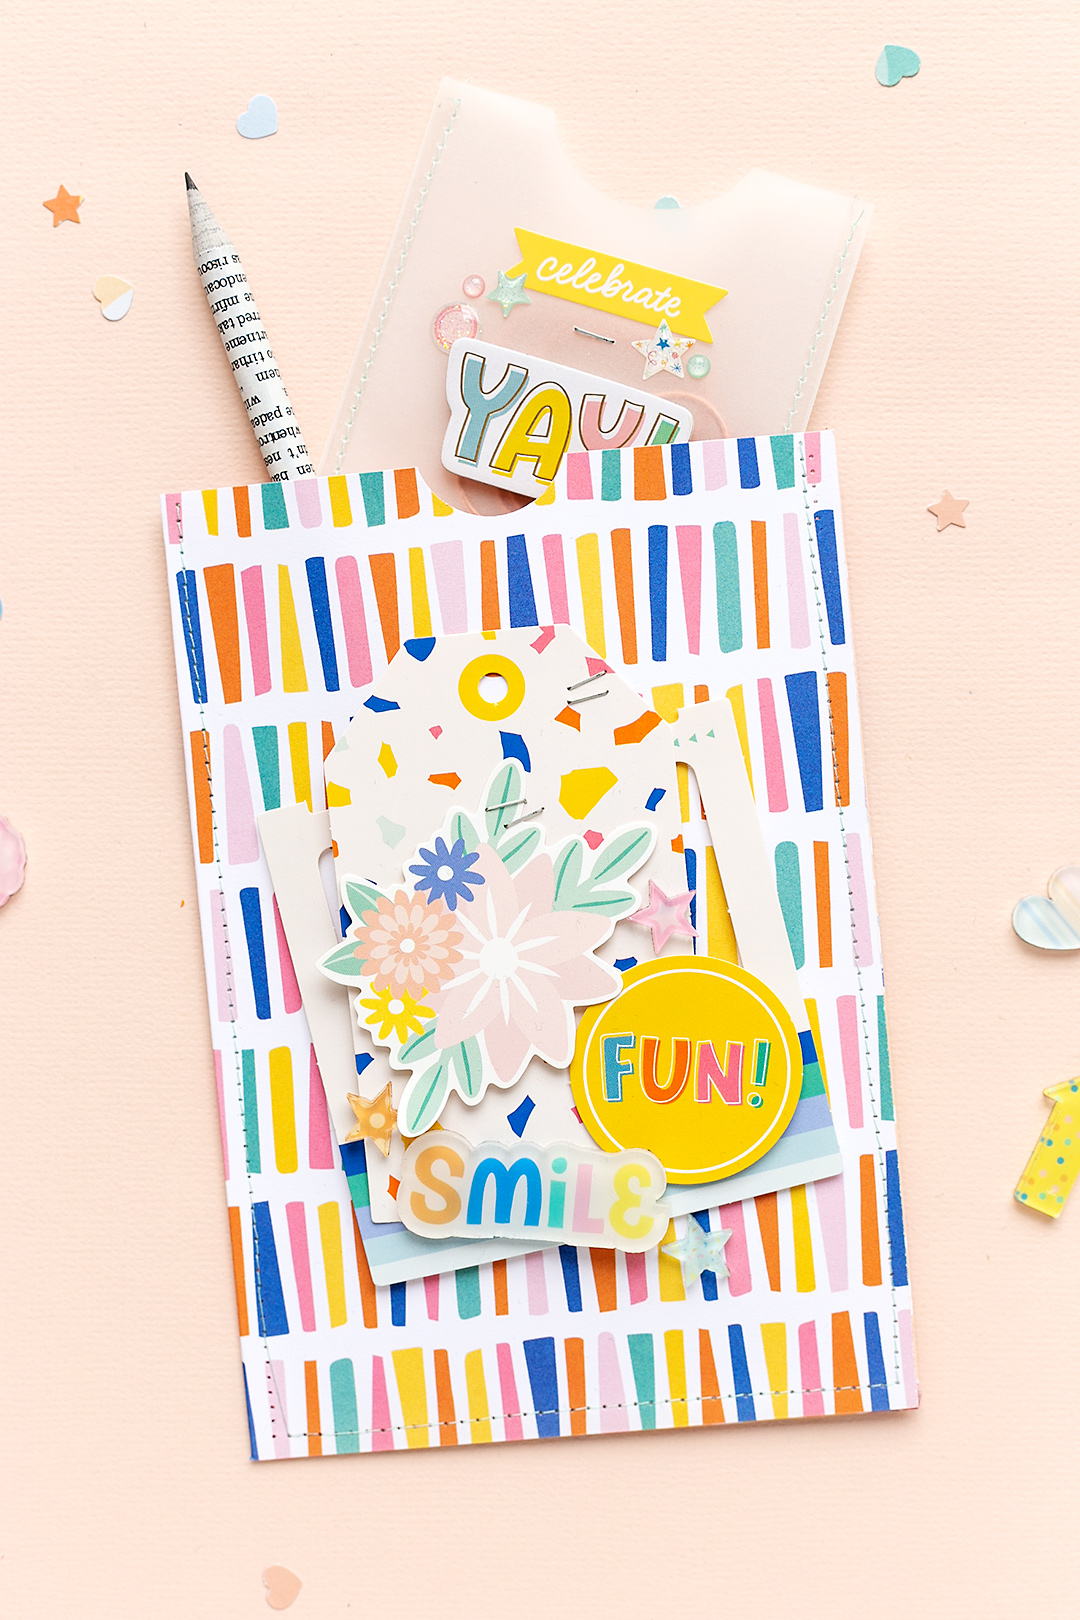 A party goodie bag with a fun pattern and layered embellishments from the papercrafting and scrapbooking collection Buenos Dias by Obed Marshall. The bag is stuffed with a pencil and a handmade vellum bag.